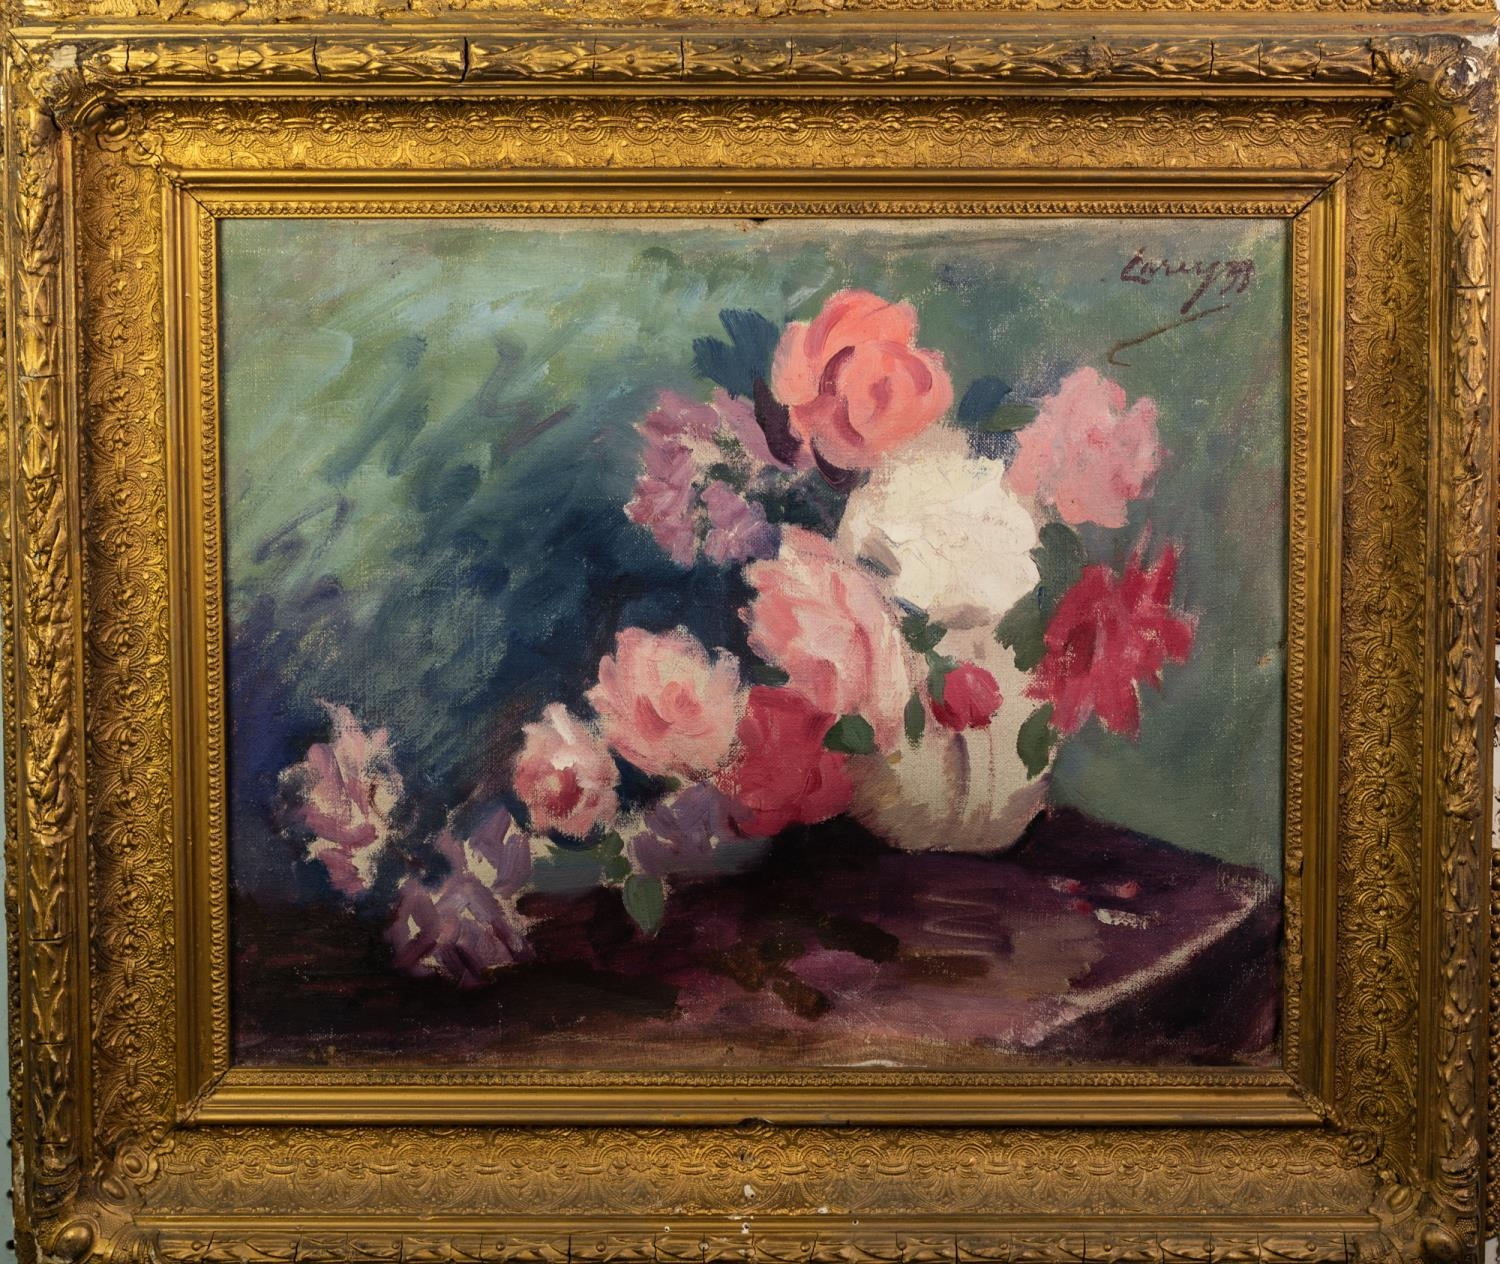 BRITISH SCHOOL (20th Century) OIL PAINTING ON CANVAS Study of roses in a vase Indistinctly signed - Image 2 of 2